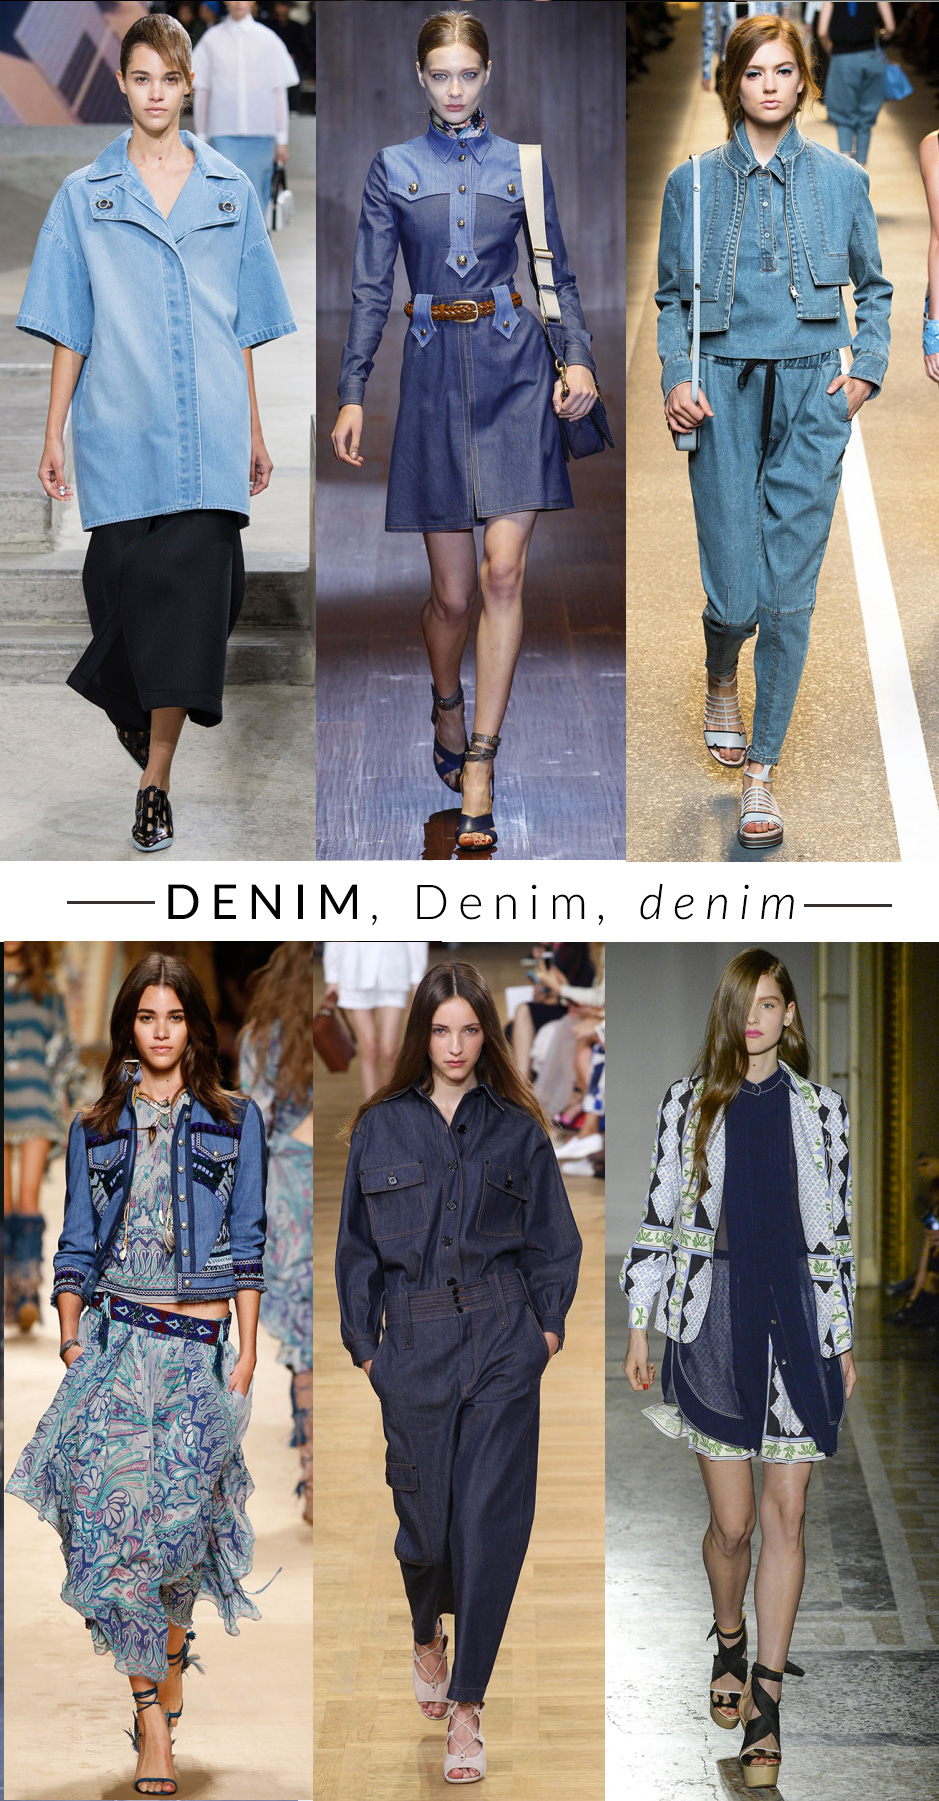 denim trend moda primavera estate 2015 fashion blogger elena schiavon